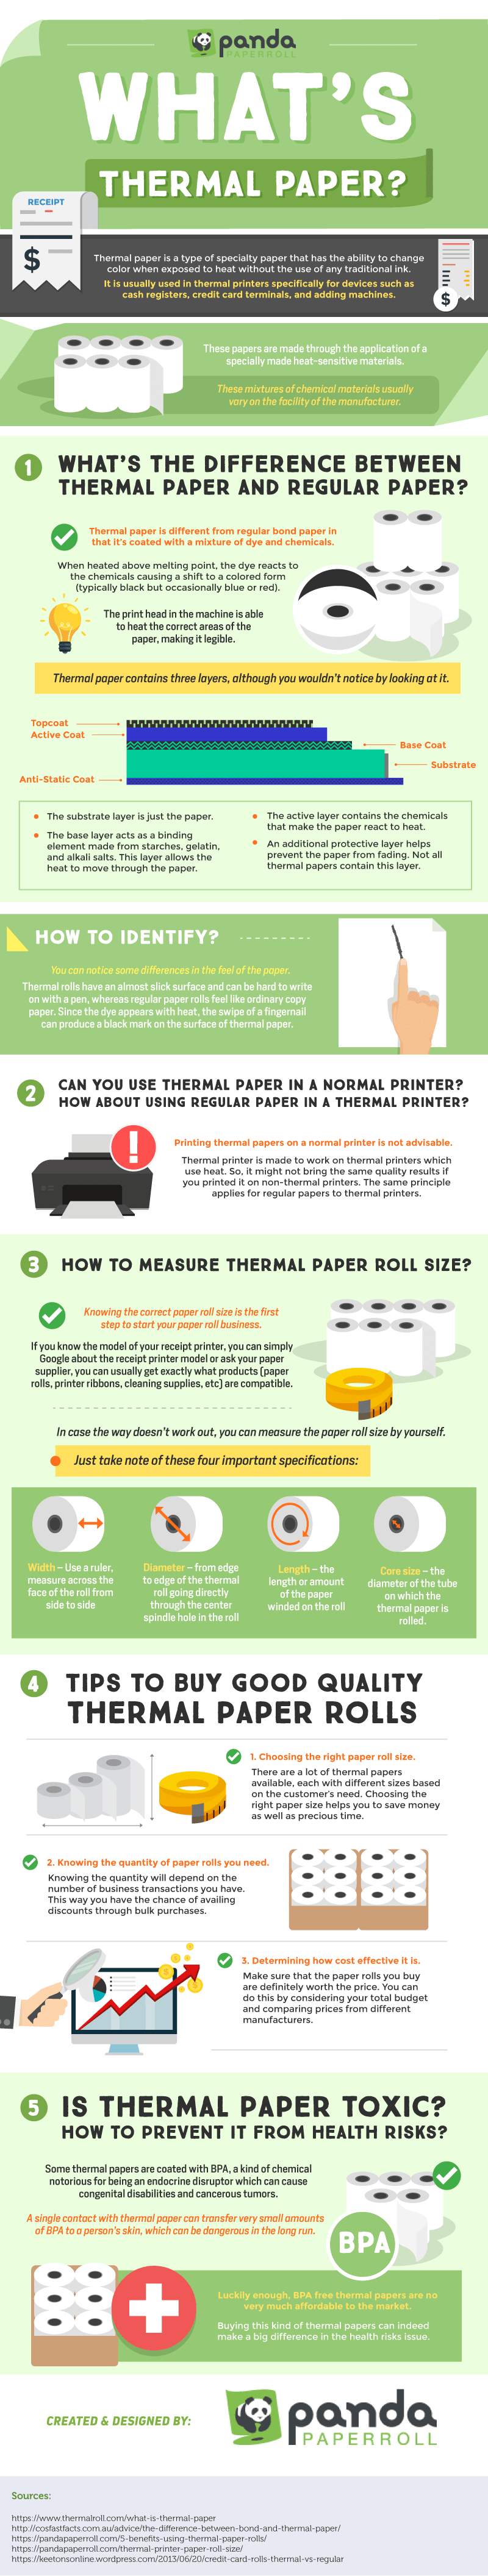 whats thermal paper